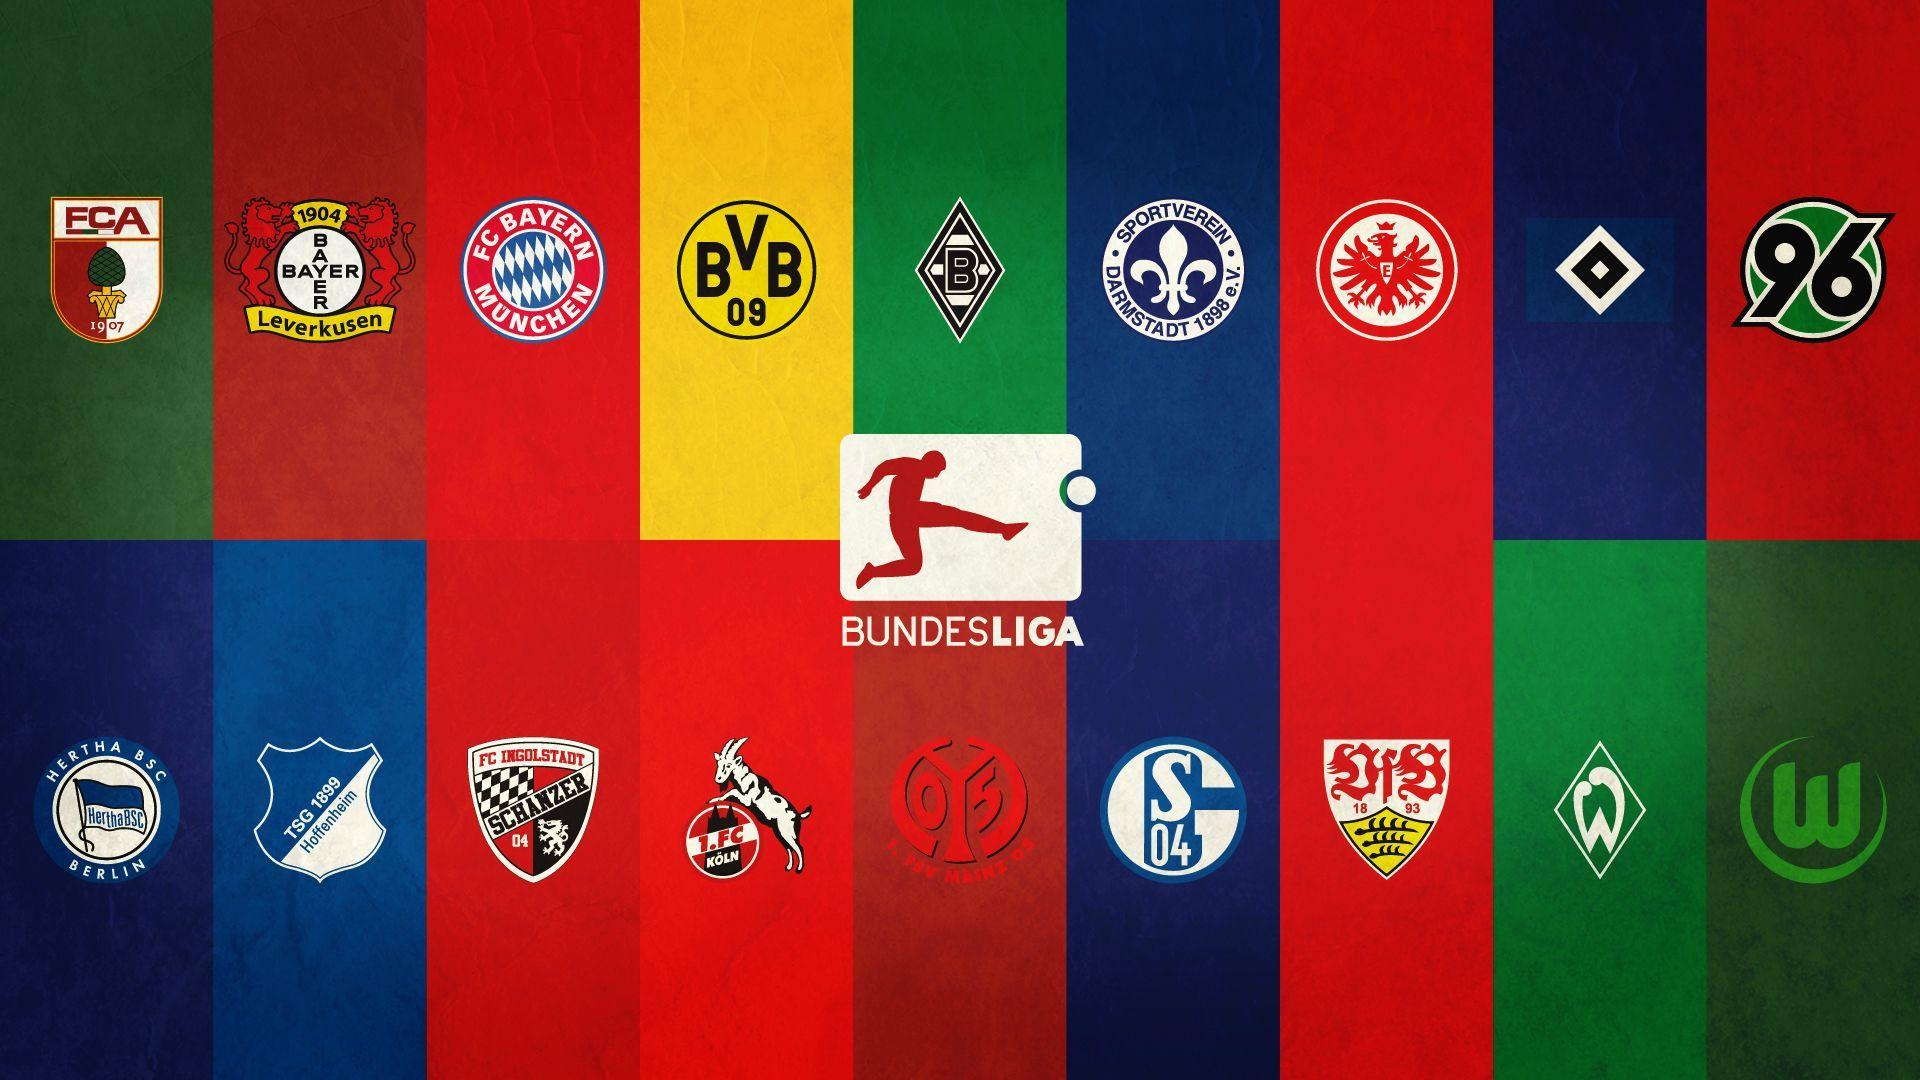 How to Watch Bundesliga Live Online - The VPN Guru